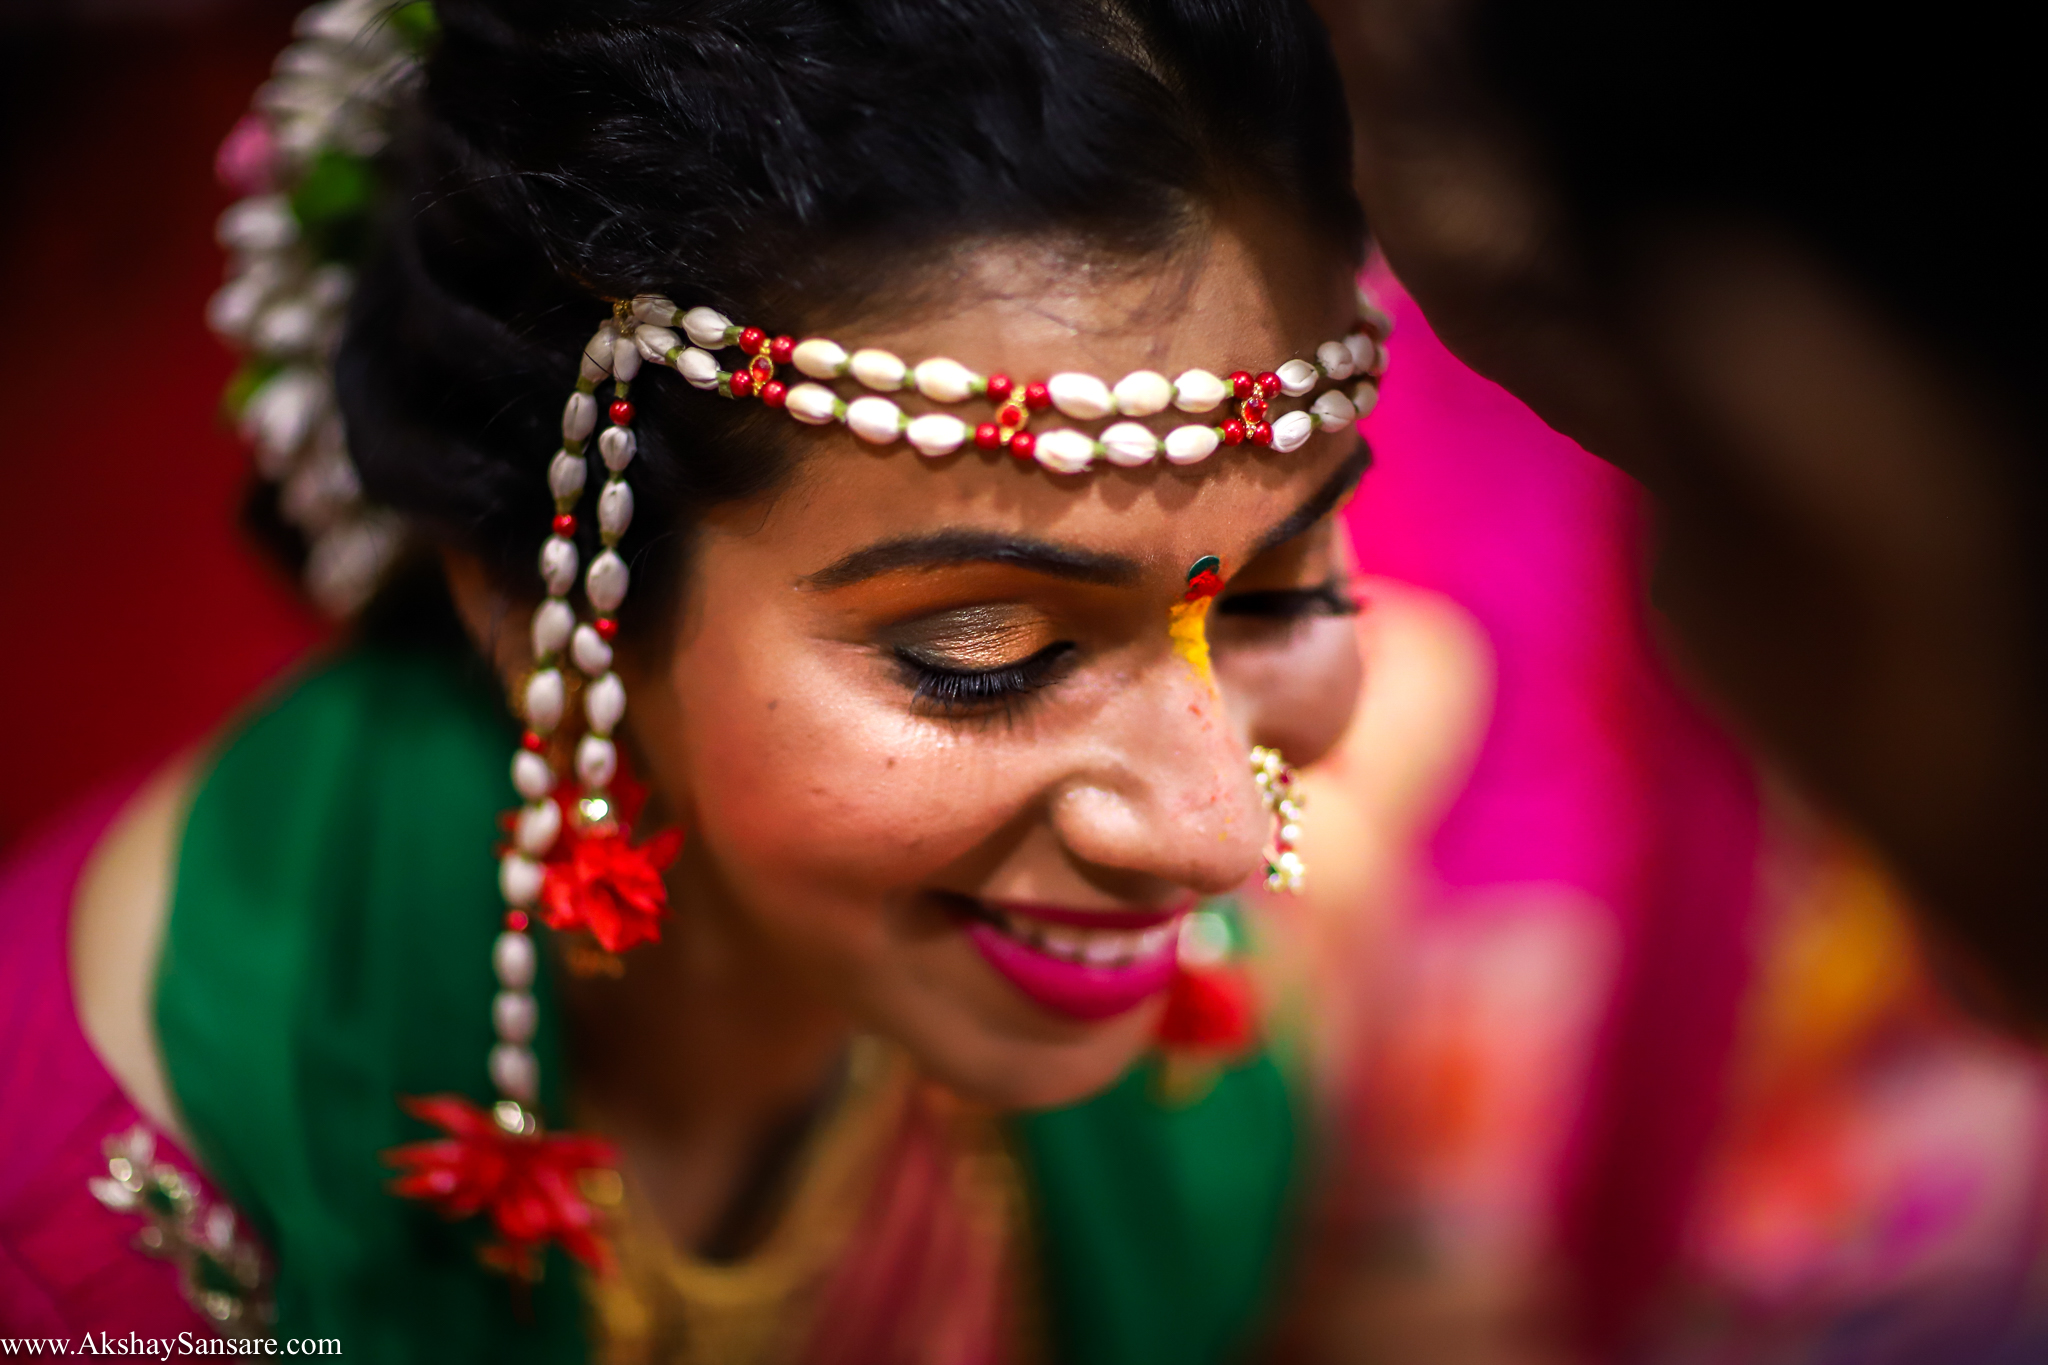 Nupur & Rohan wedding Akshay Sansare Photography best wedding photographer in mumbai India Candid(28).jpg